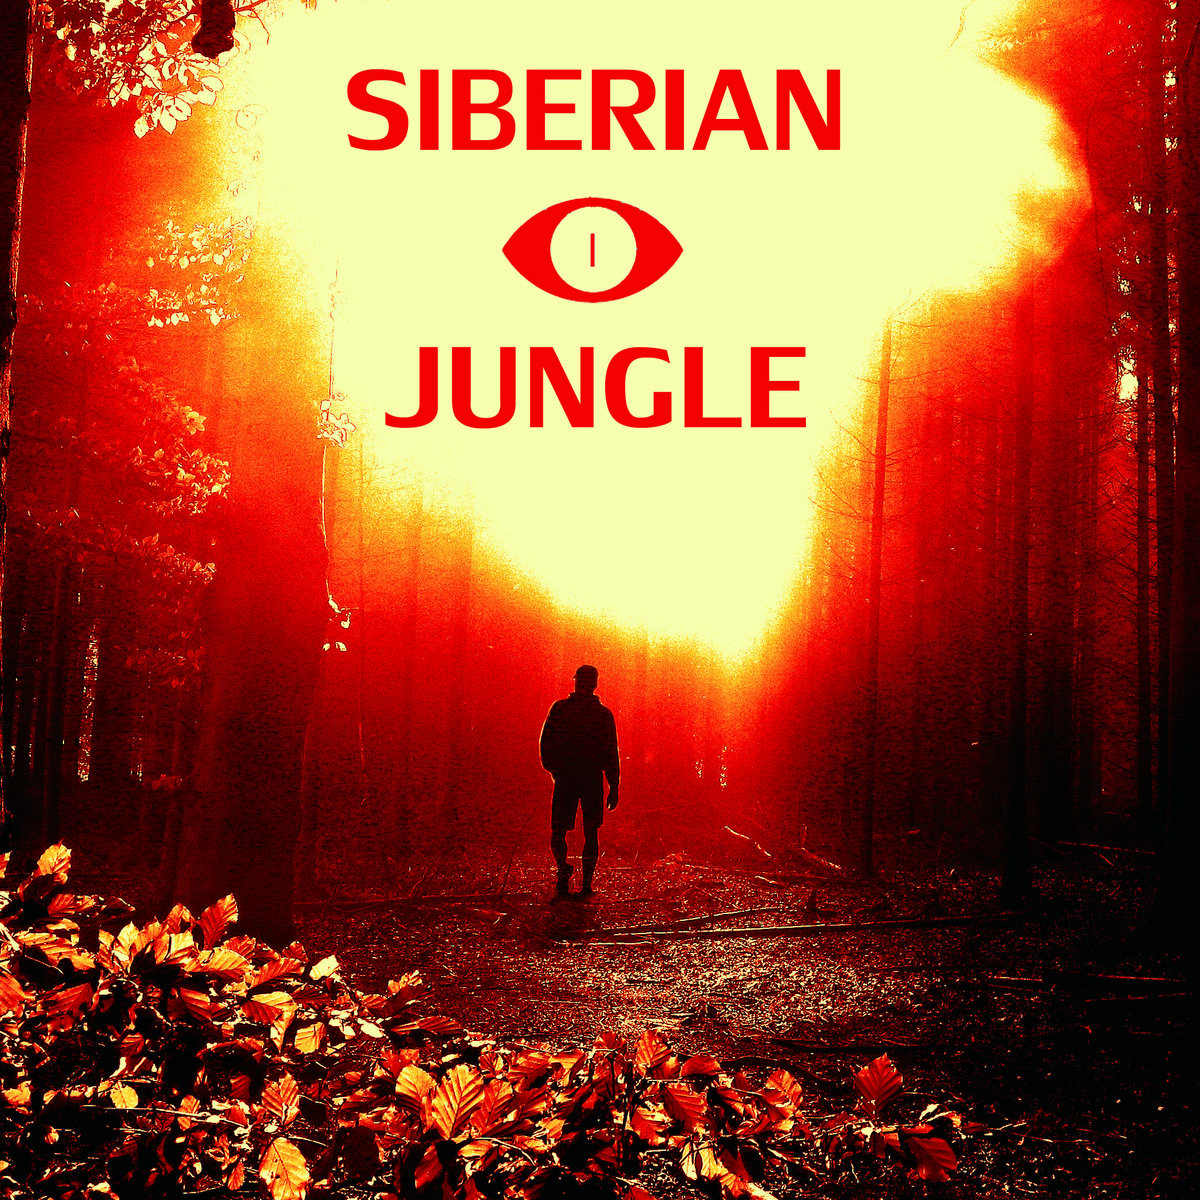 Jung - Night Voices @ 'Siberian Jungle - Volume 1' album (atmospheric drum'n'bass, electronic)